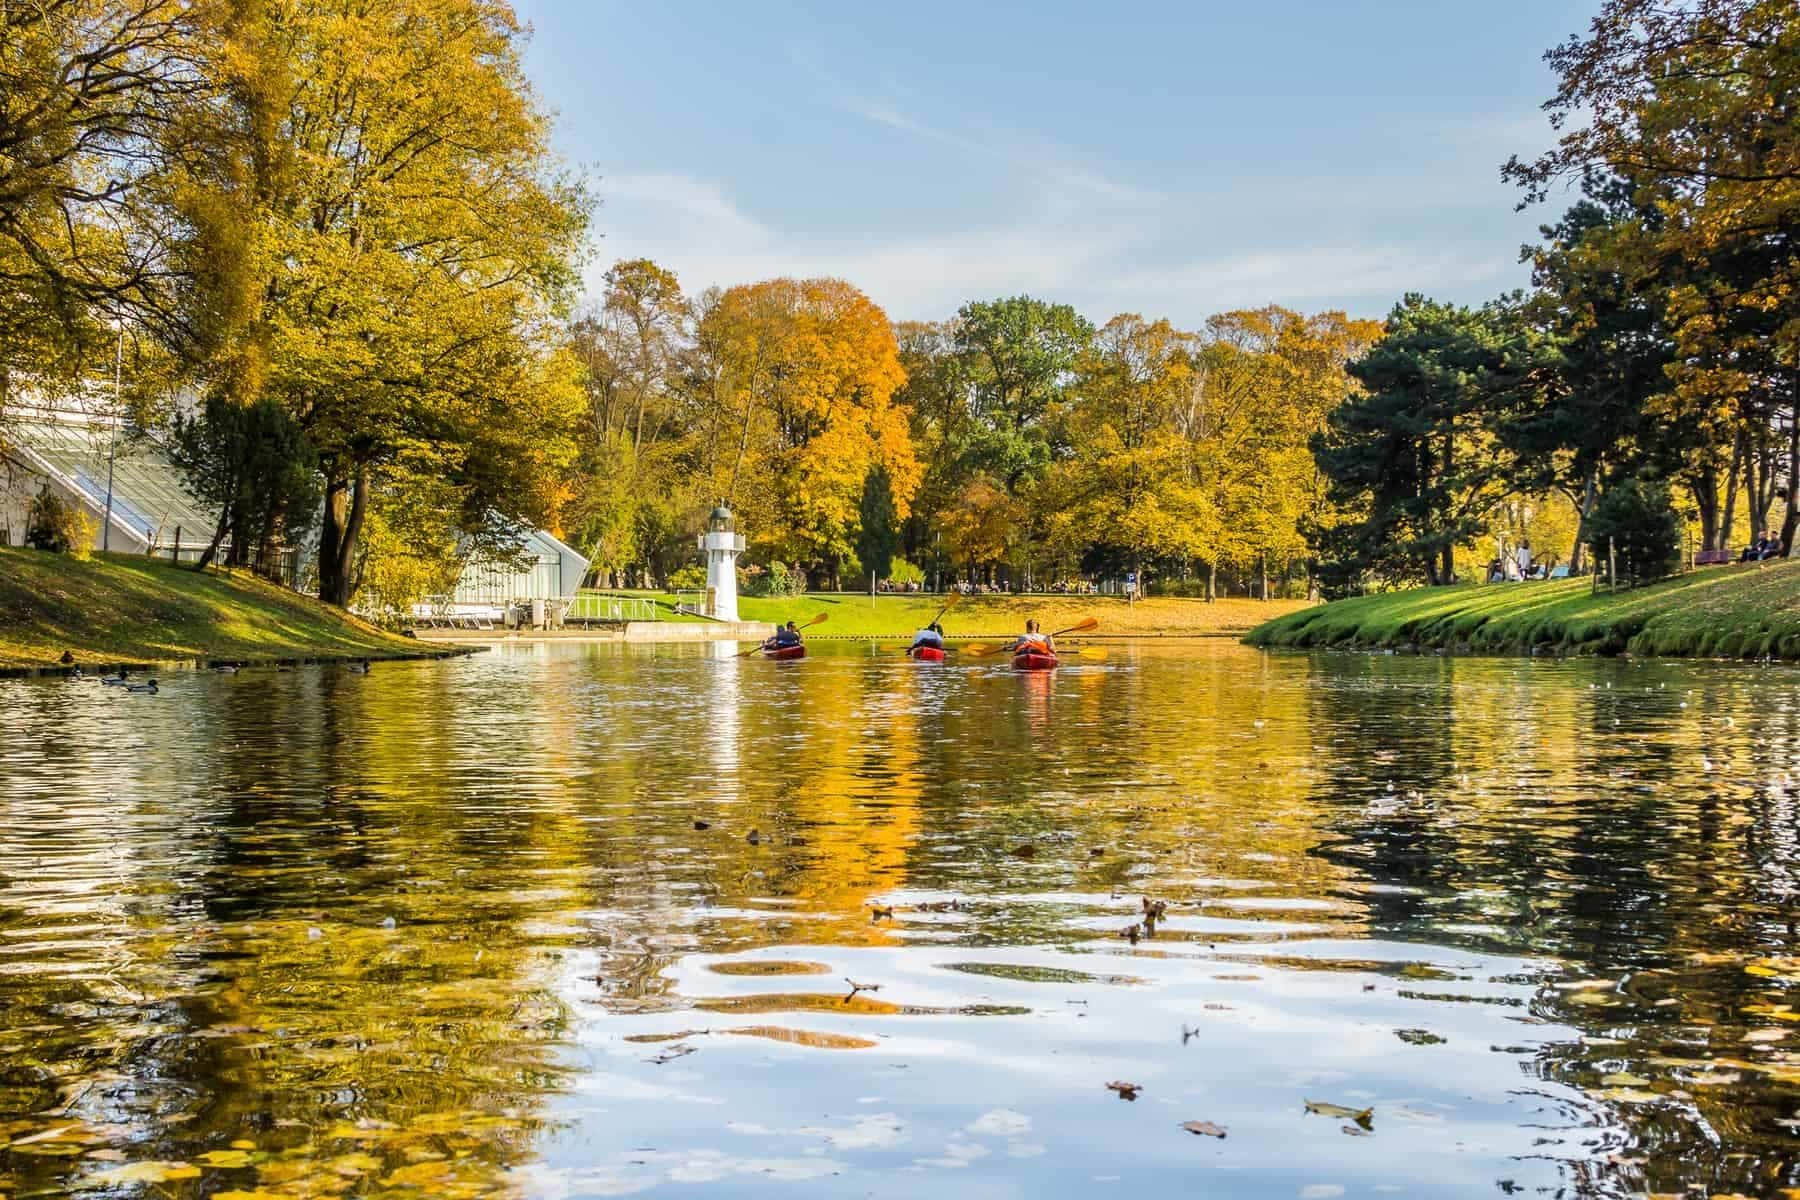 kayak trip on the river Daugava and the canal around the old city, closing the season on October 13, 2018